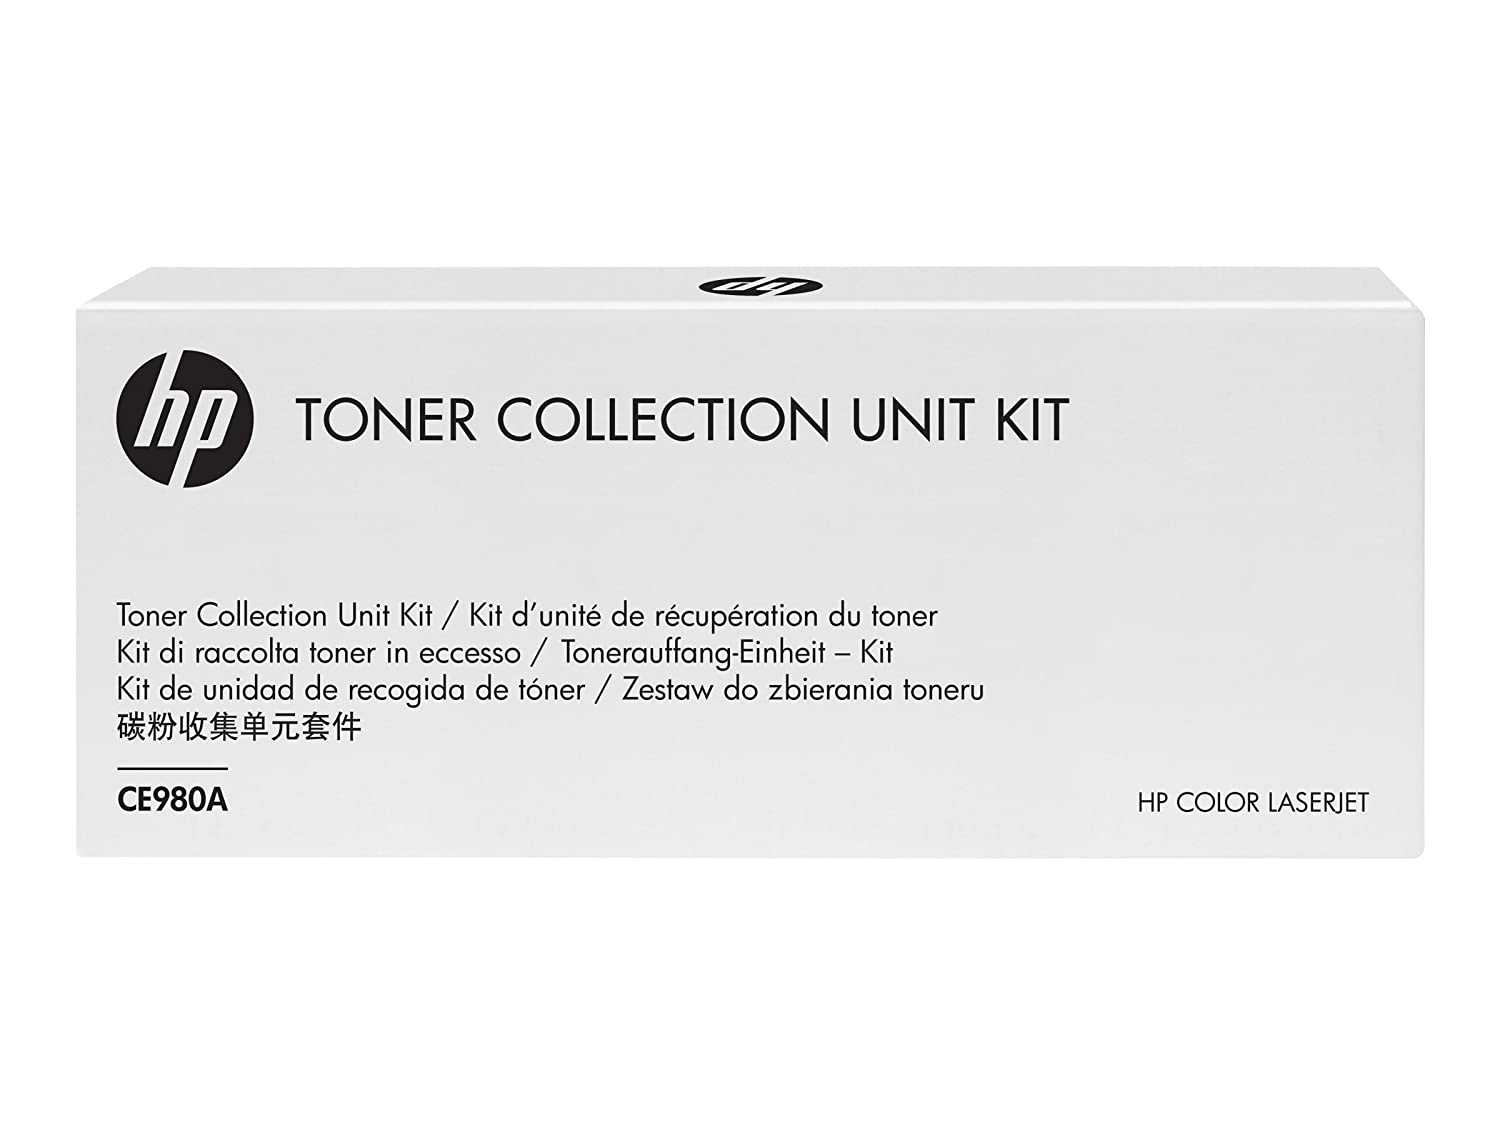 HP – inc. Toner Collection Unit Kit, ce980 – 67901, CE980 A (Includes Waste Toner Box Assembly, and Toner Cleaning Cloth) ce980 - 67901